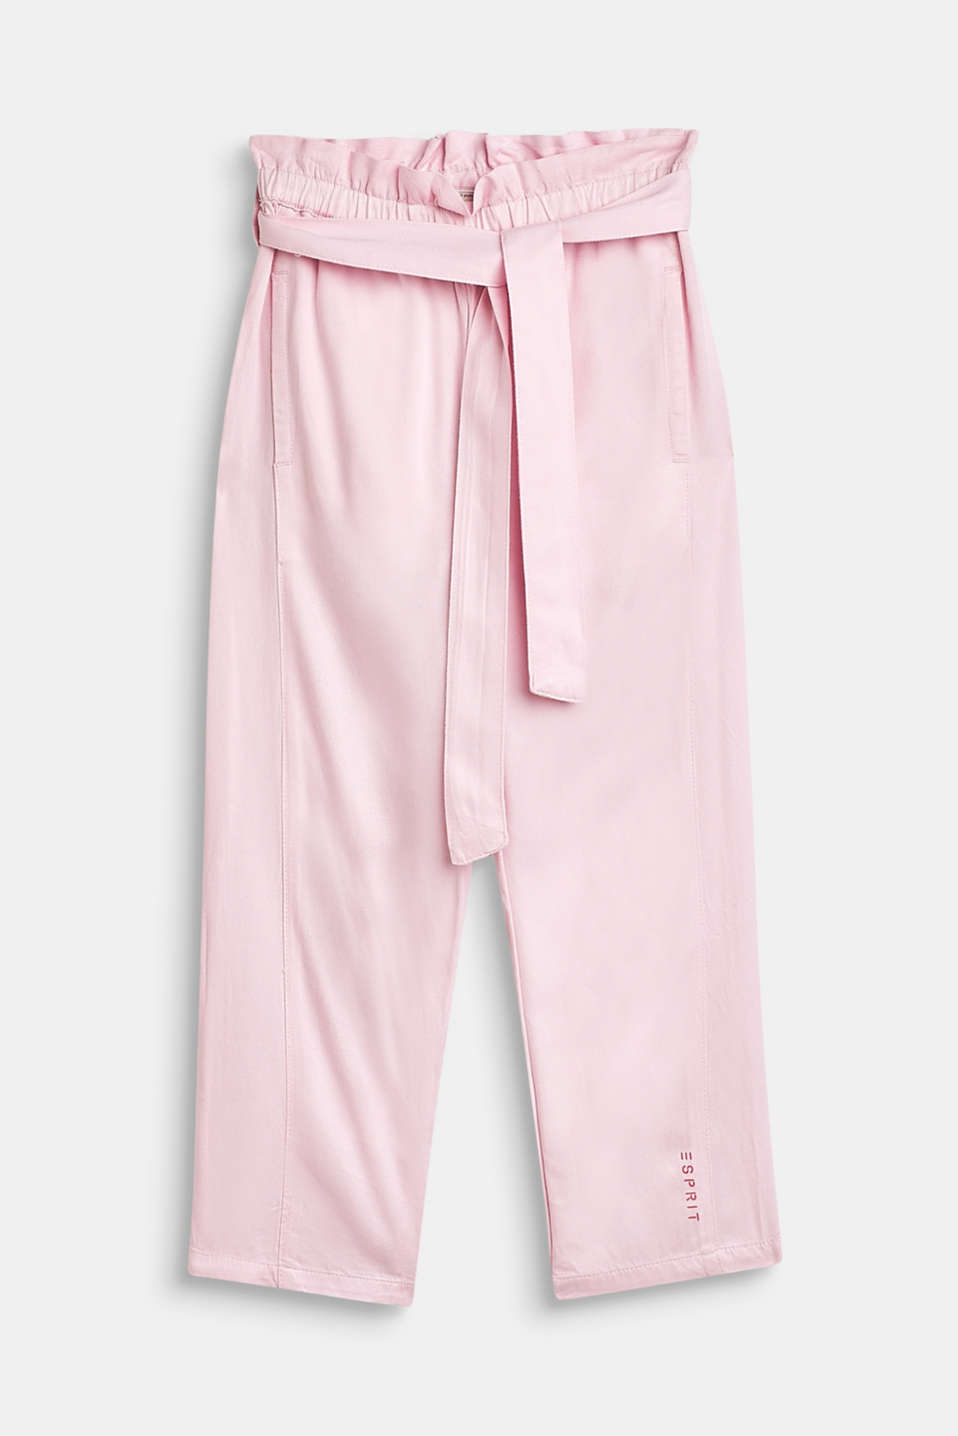 Flowing trousers in a paper bag style, BLUSH, detail image number 0